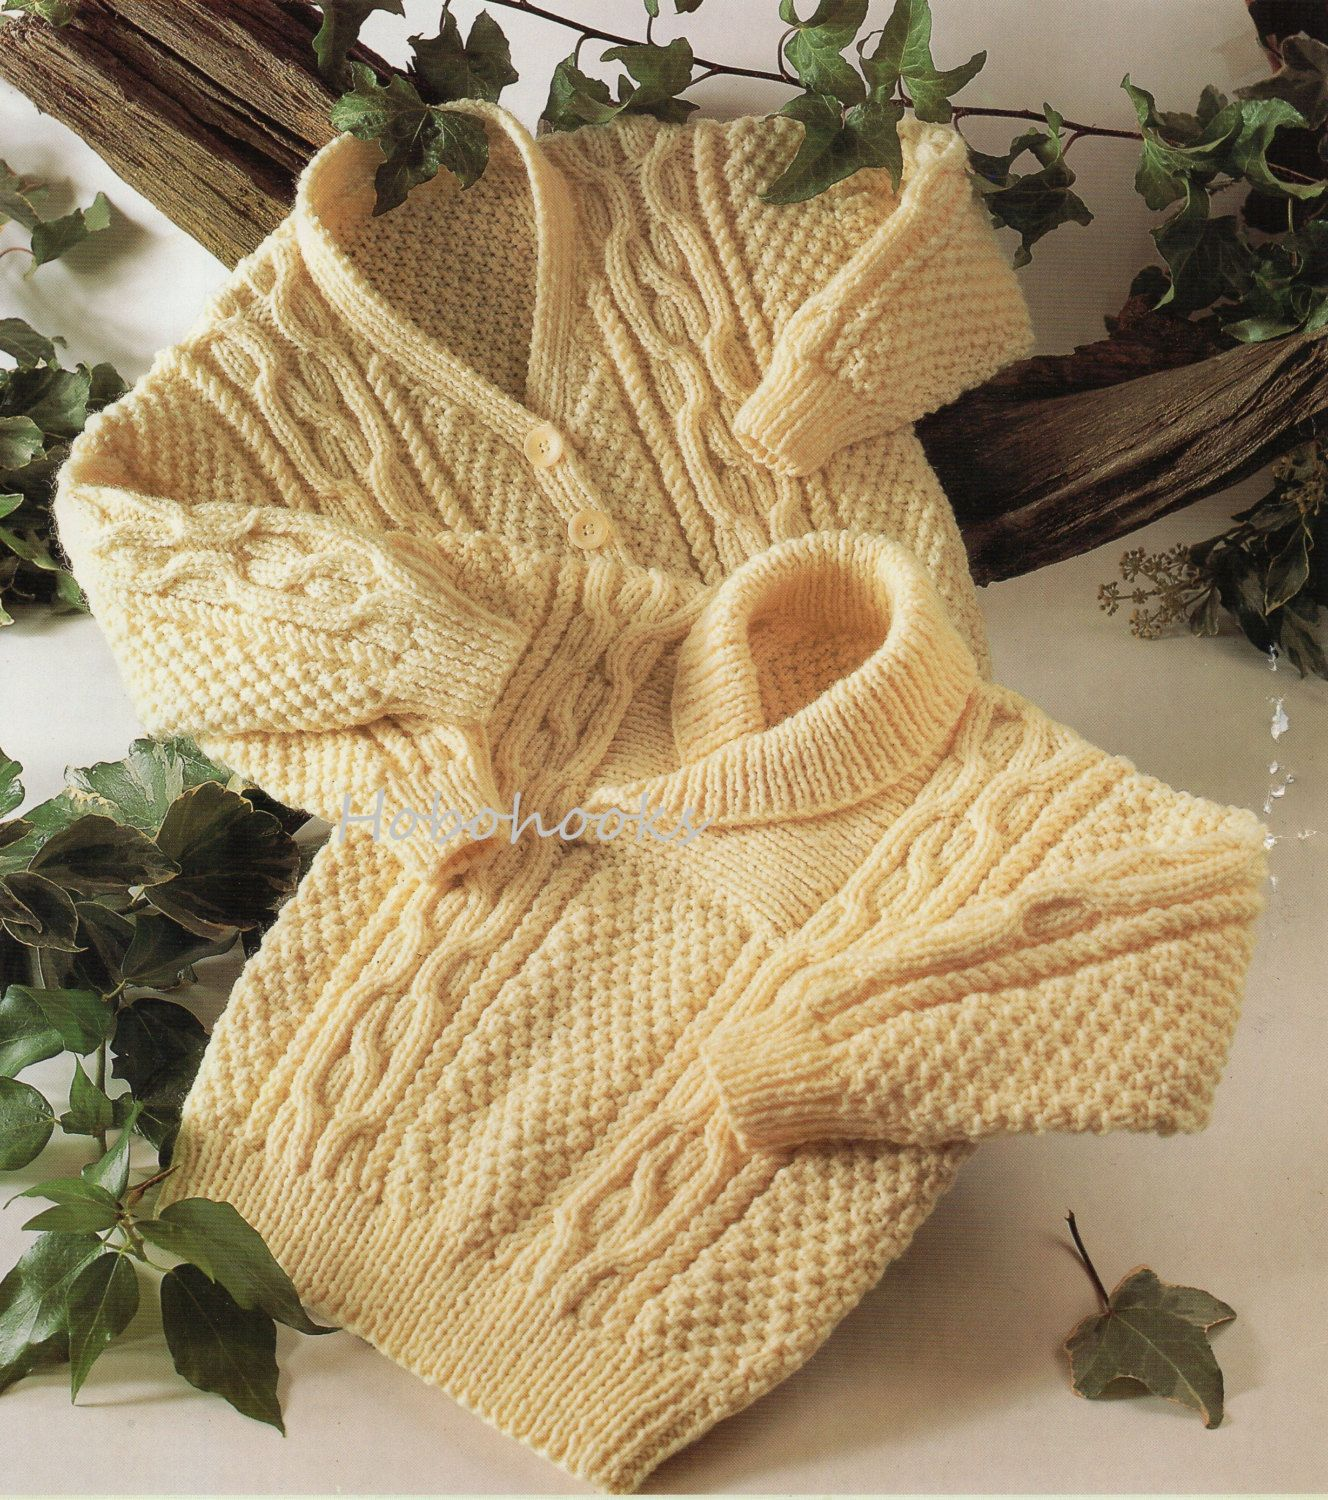 Baby toddler childrens aran sweater cable sweater shawl collar v baby toddler childrens aran sweater cable sweater shawl collar v neck aran cardigan 20 28 inch baby knitting pattern pdf instant download bankloansurffo Choice Image